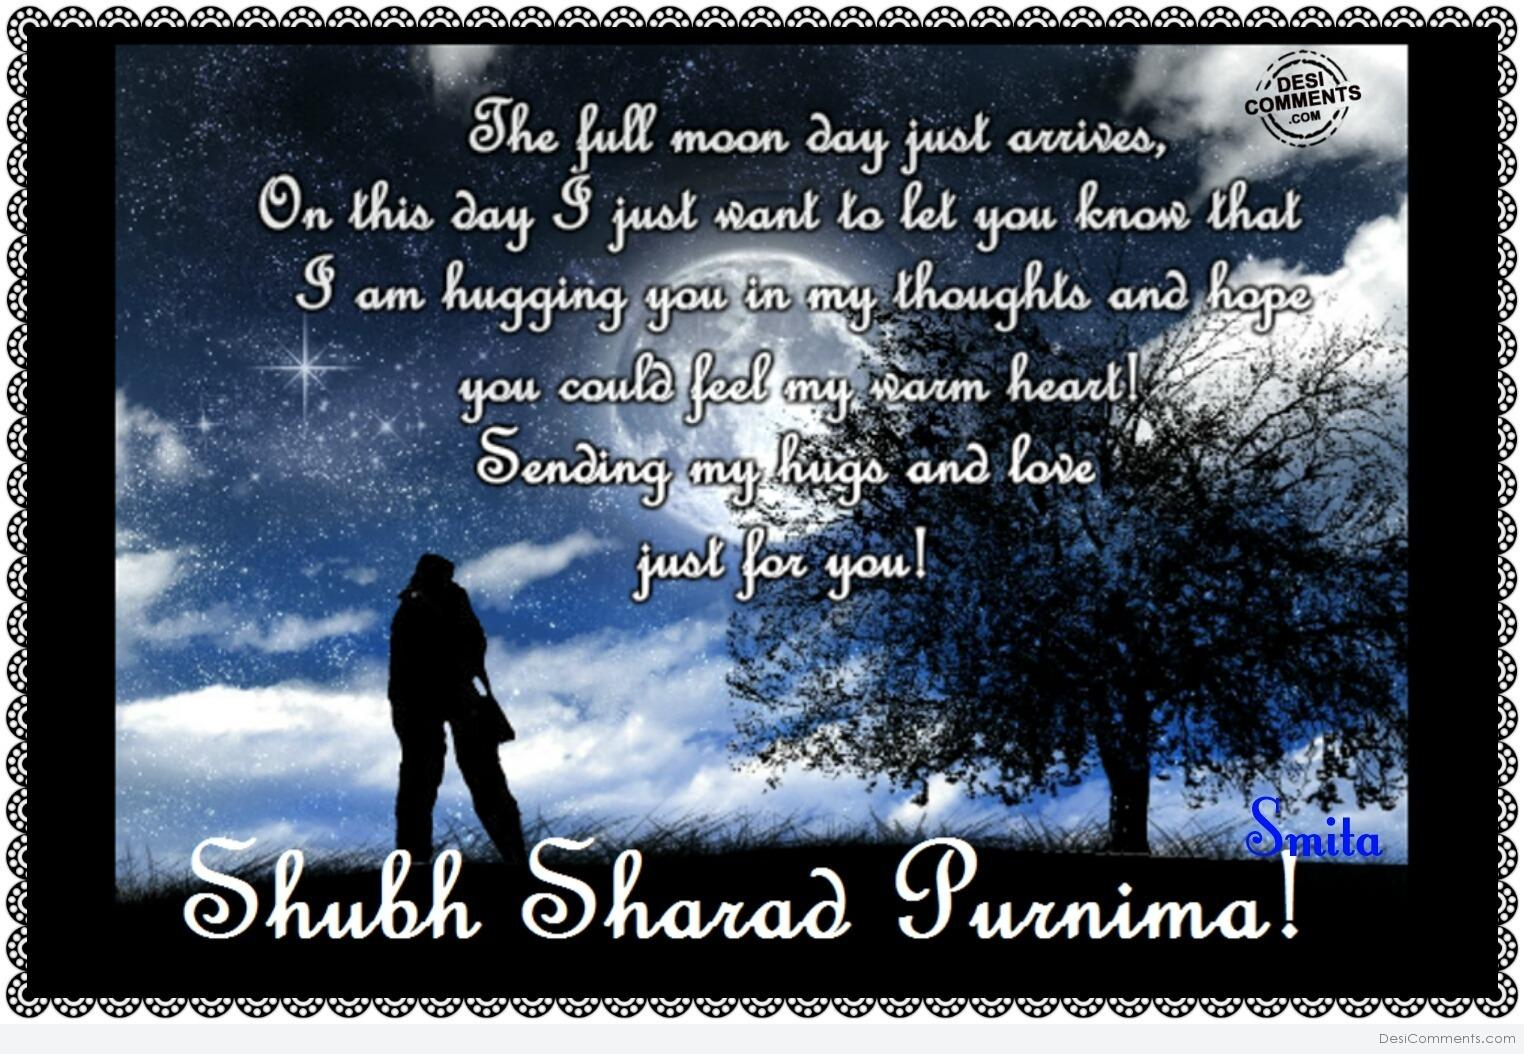 Sharad Purnima Pictures Images Graphics Page